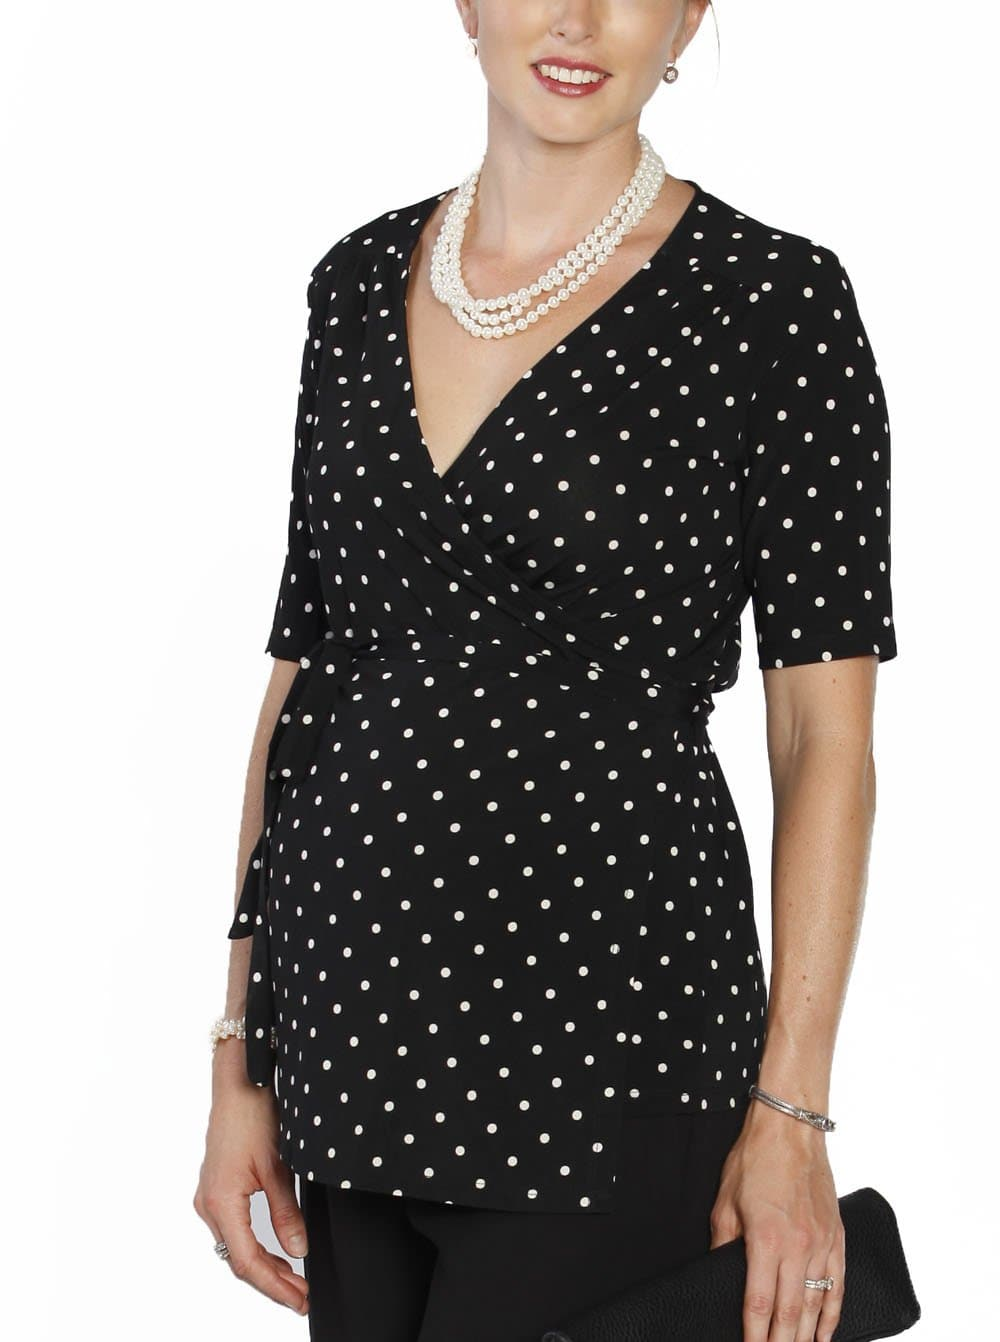 Maternity Clothes Online - Angel Maternity - Emily Wrap Nursing Top in black/white Spots